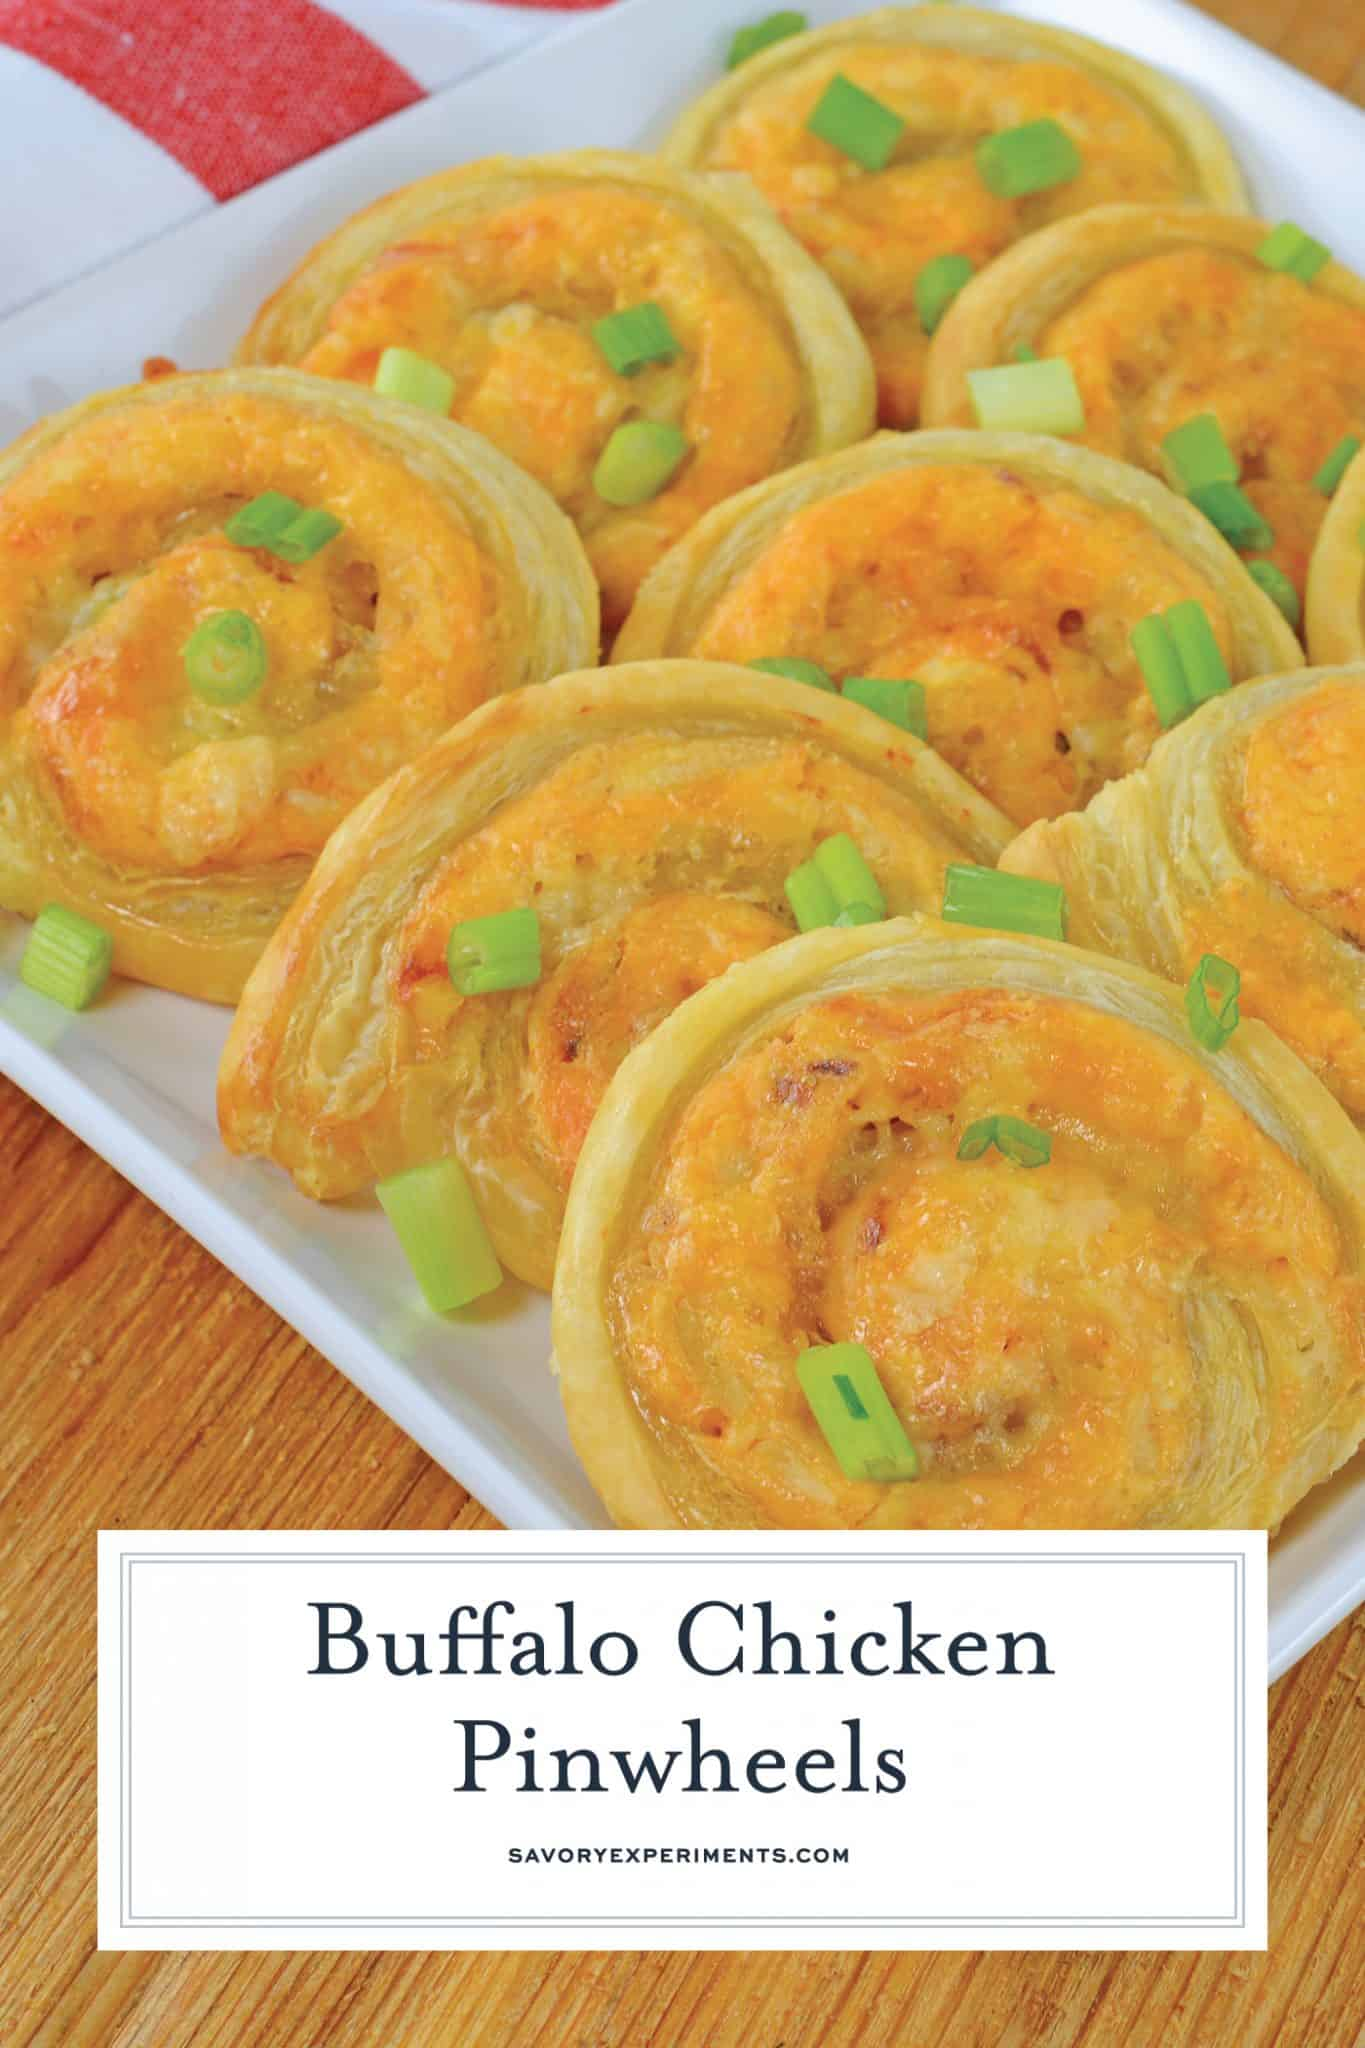 Buffalo Chicken Pinwheels are creamy, spicy buffalo dip rolled in buttery puff pastry and baked to a crispy perfection. The perfect appetizer for any event! #buffalochickendiprecipe #buffalochickenpinwheels www.savoryexperiments.com